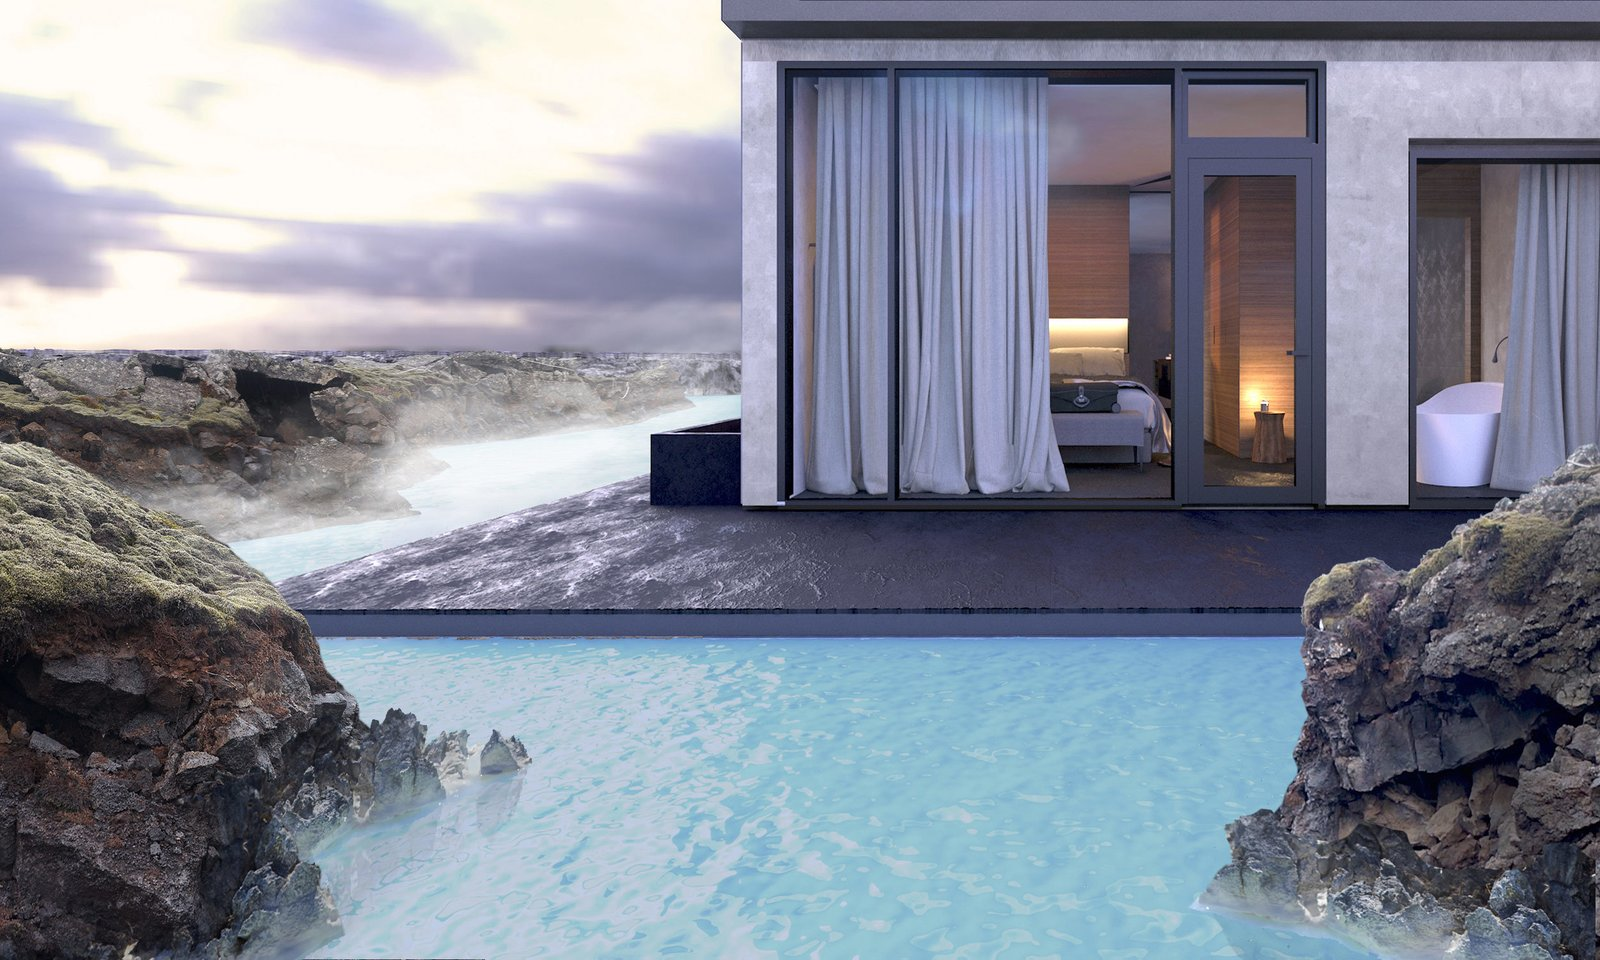 Dive into the next phase of iceland 39 s blue lagoon dwell for Blue lagoon iceland accommodation